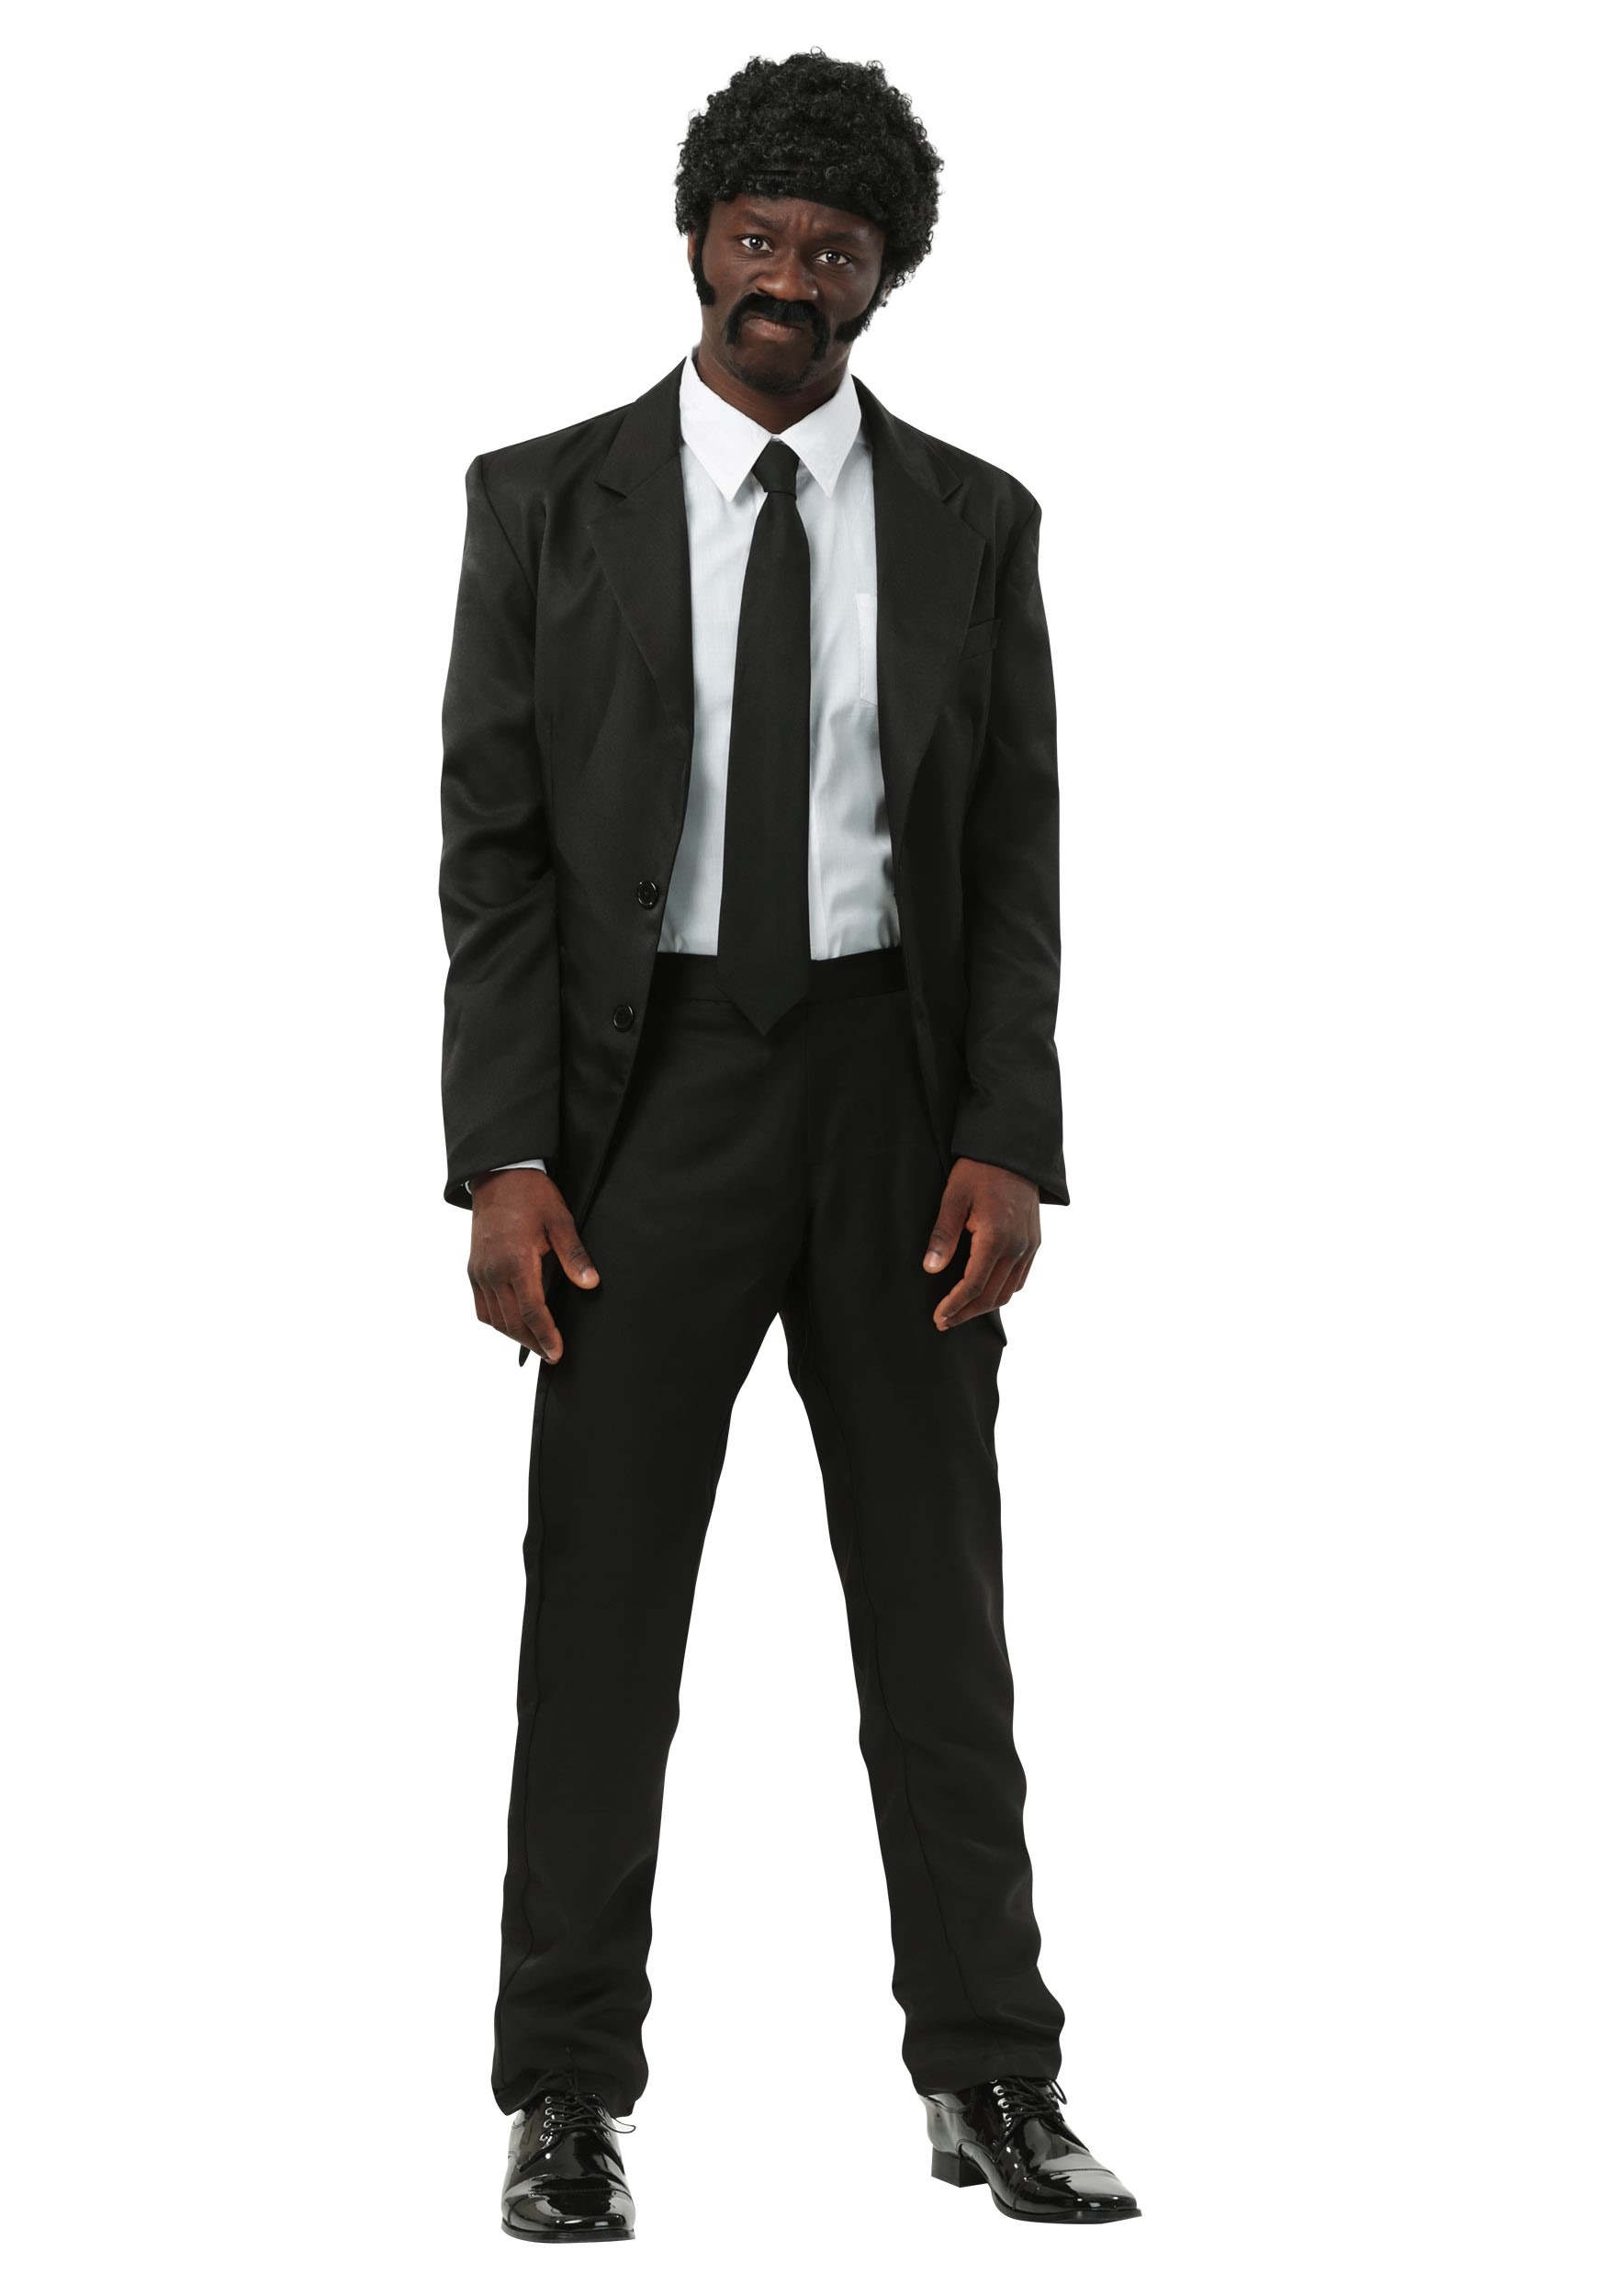 Pulp Fiction Suit Fancy Dress Costume for Men